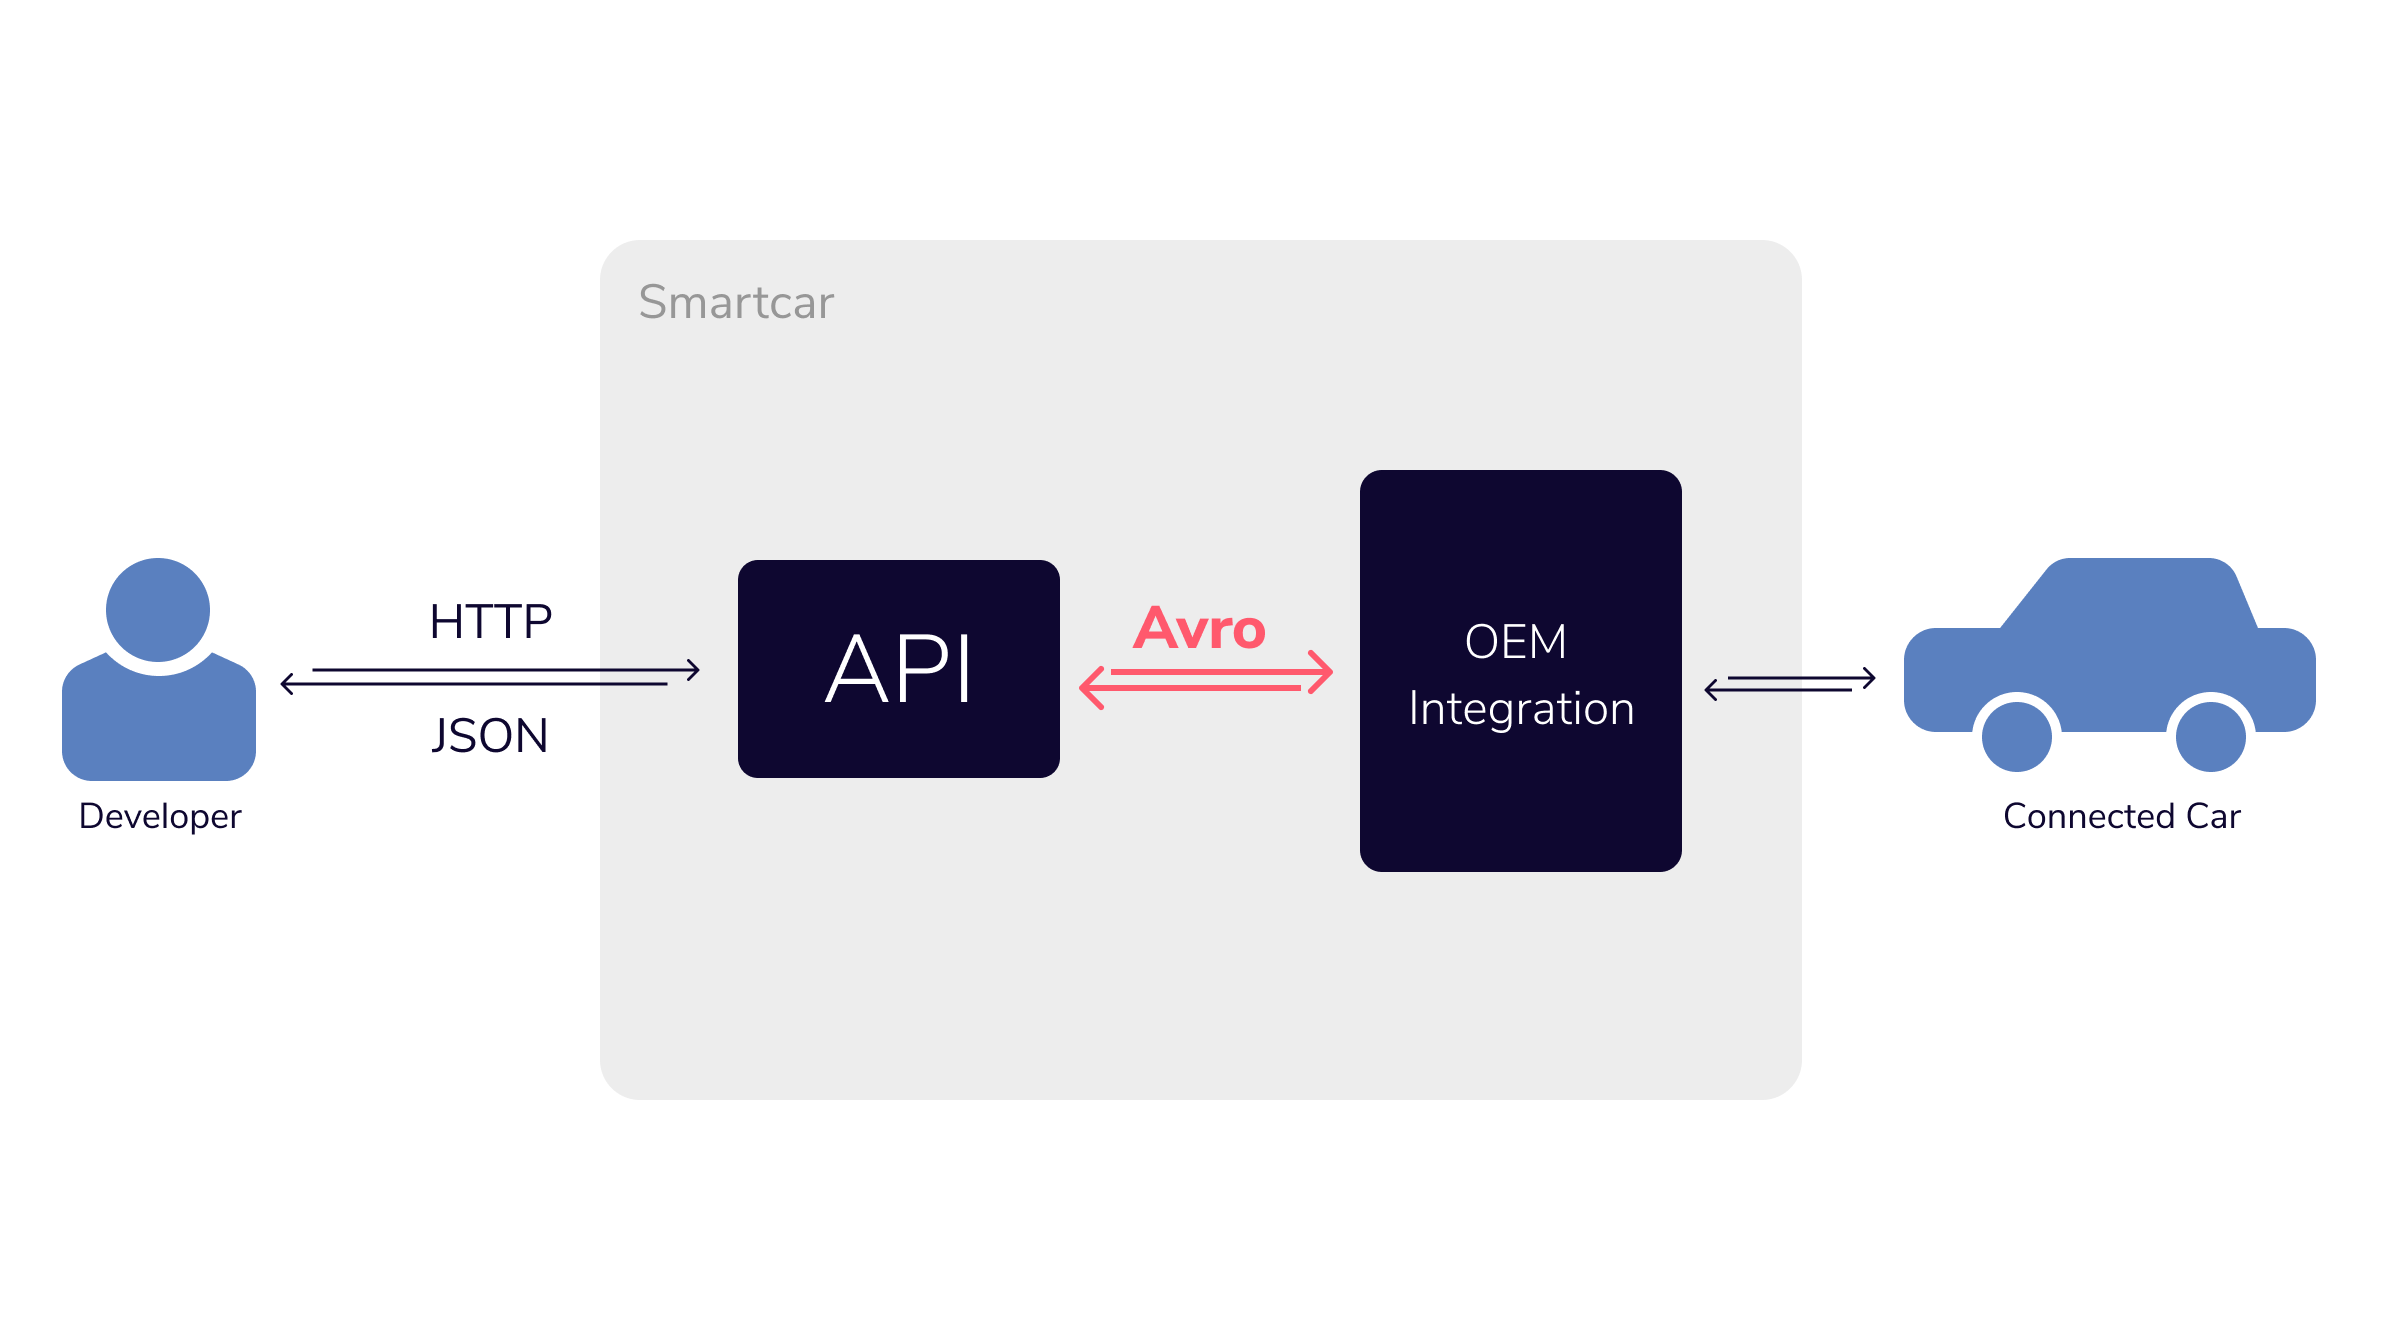 How we use Apache Avro at Smartcar